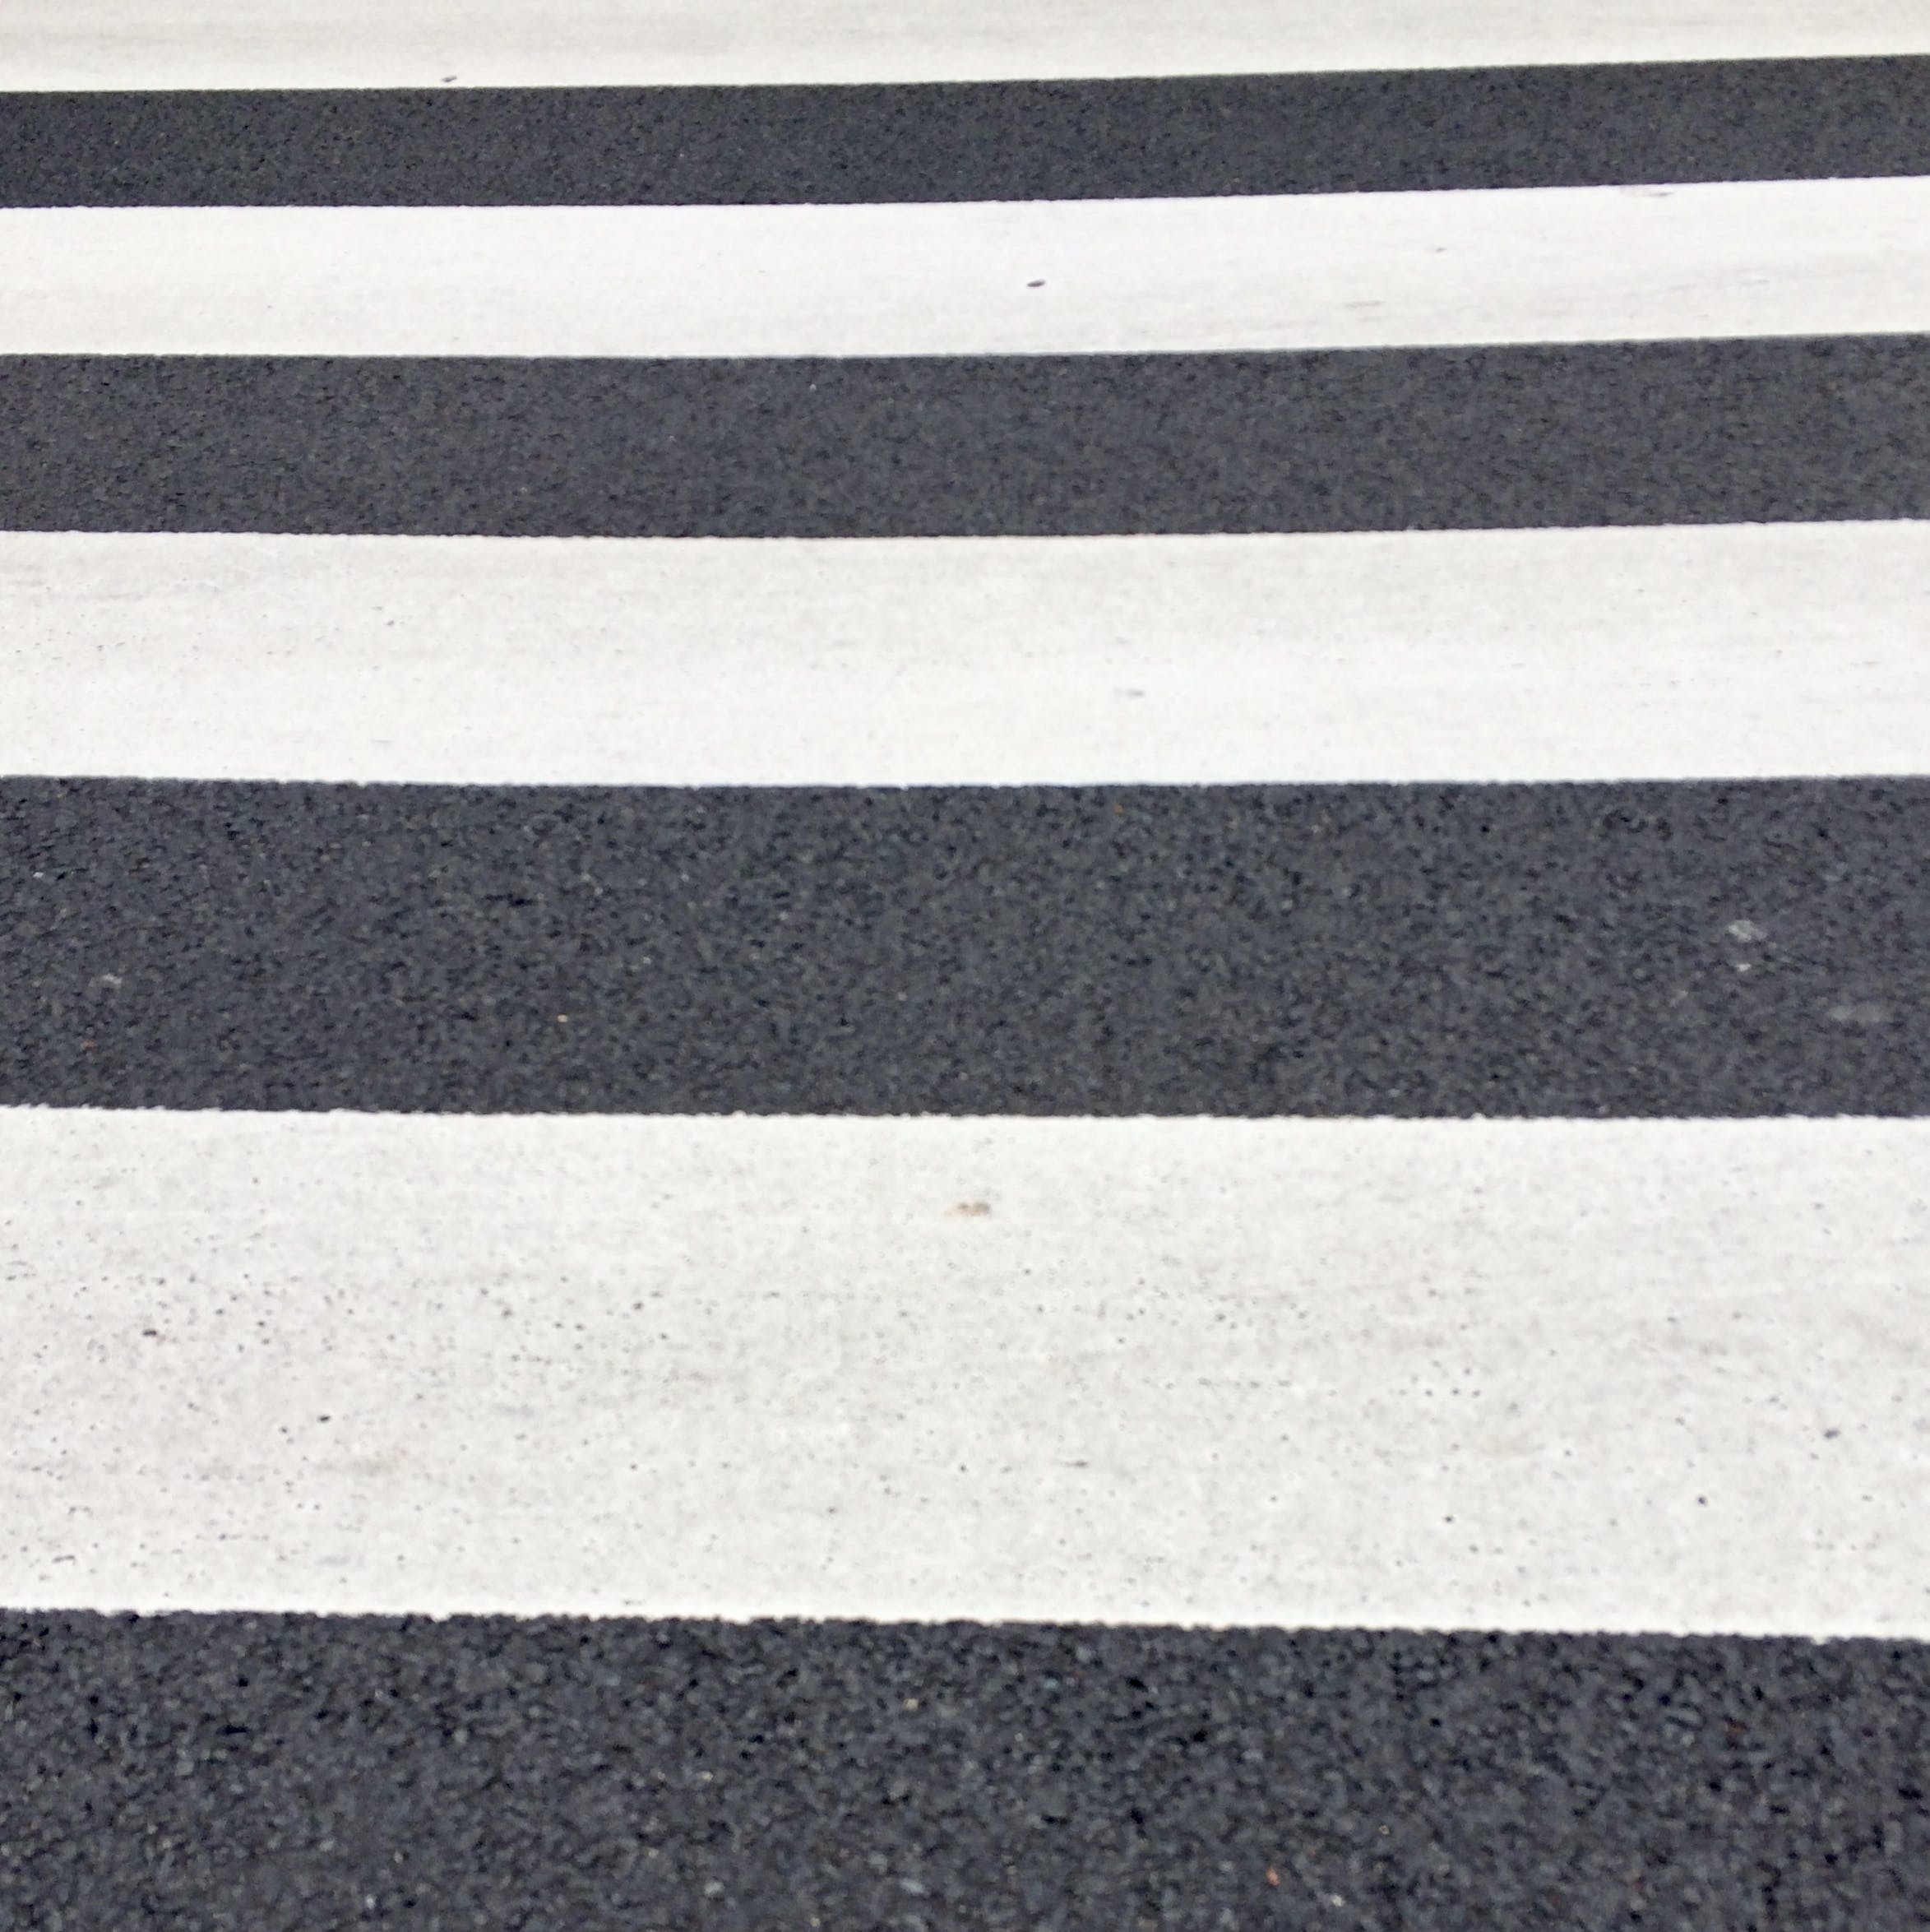 White and Gray Pedestrian Line